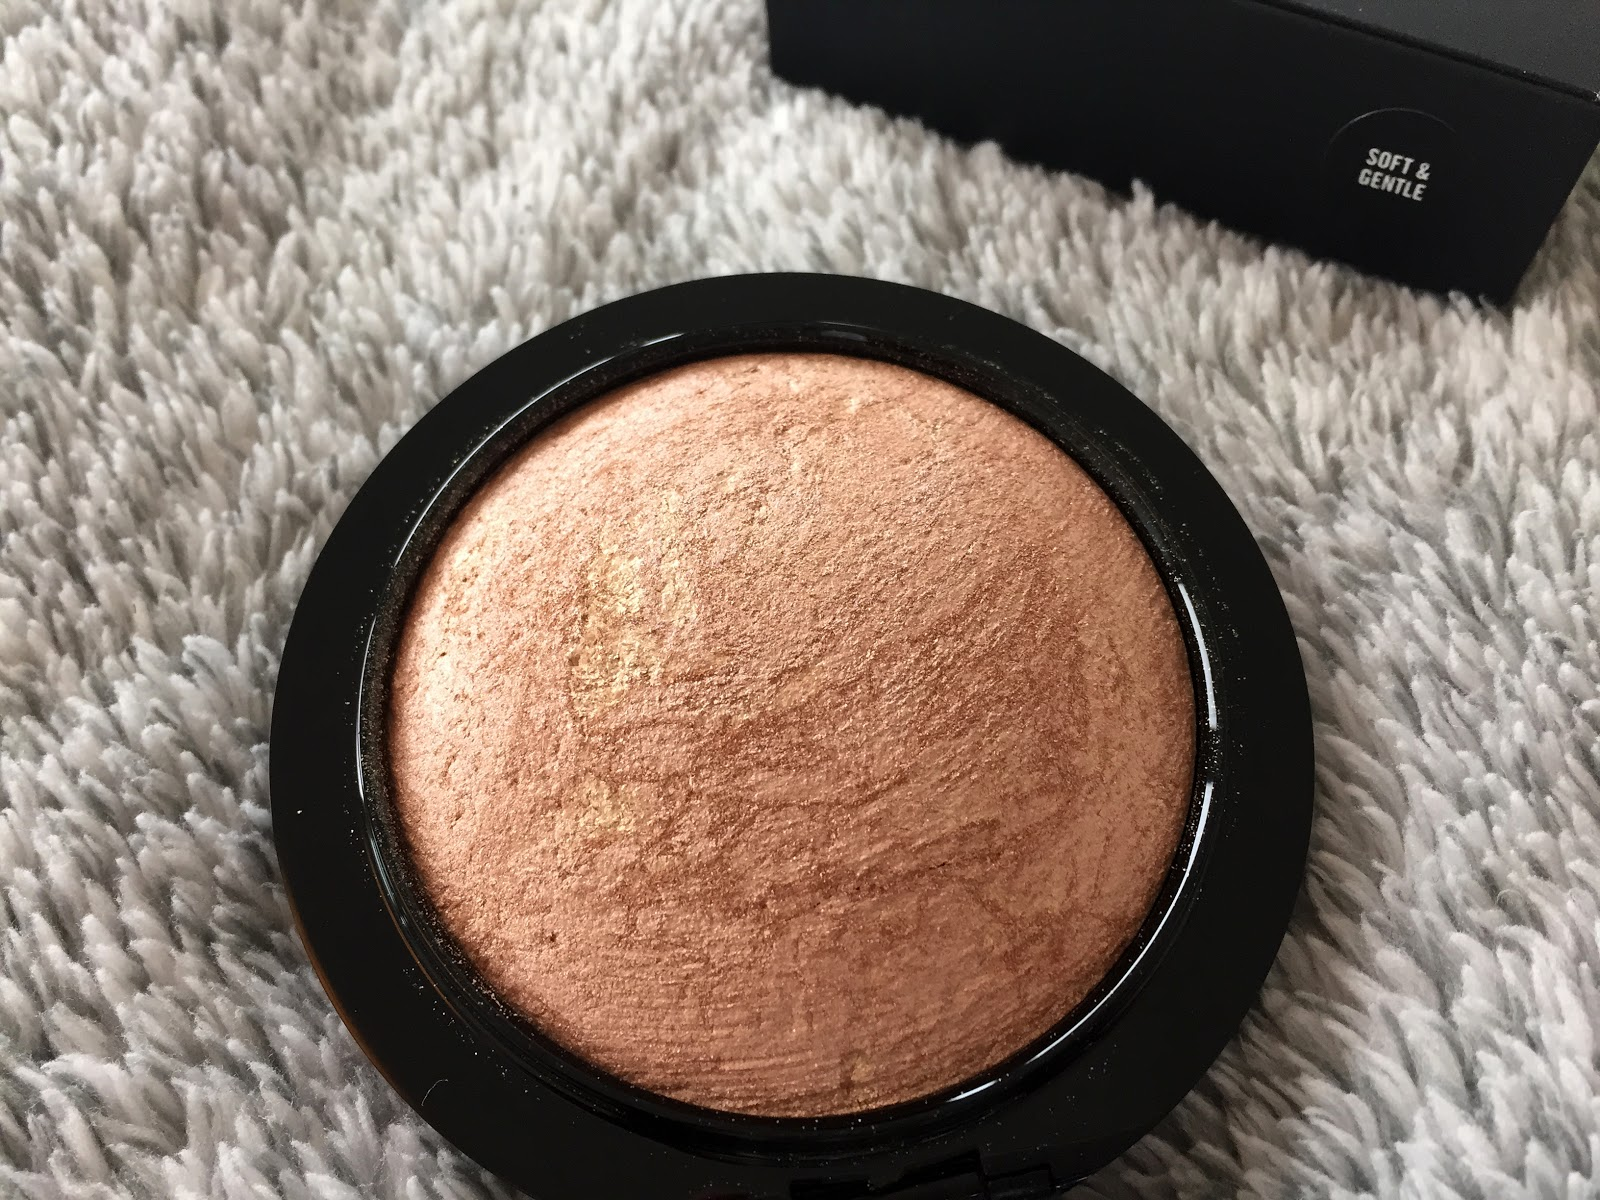 MAC, mac blusher, mac powder, mac soft & gentle, MAC breath of plum, MAC review